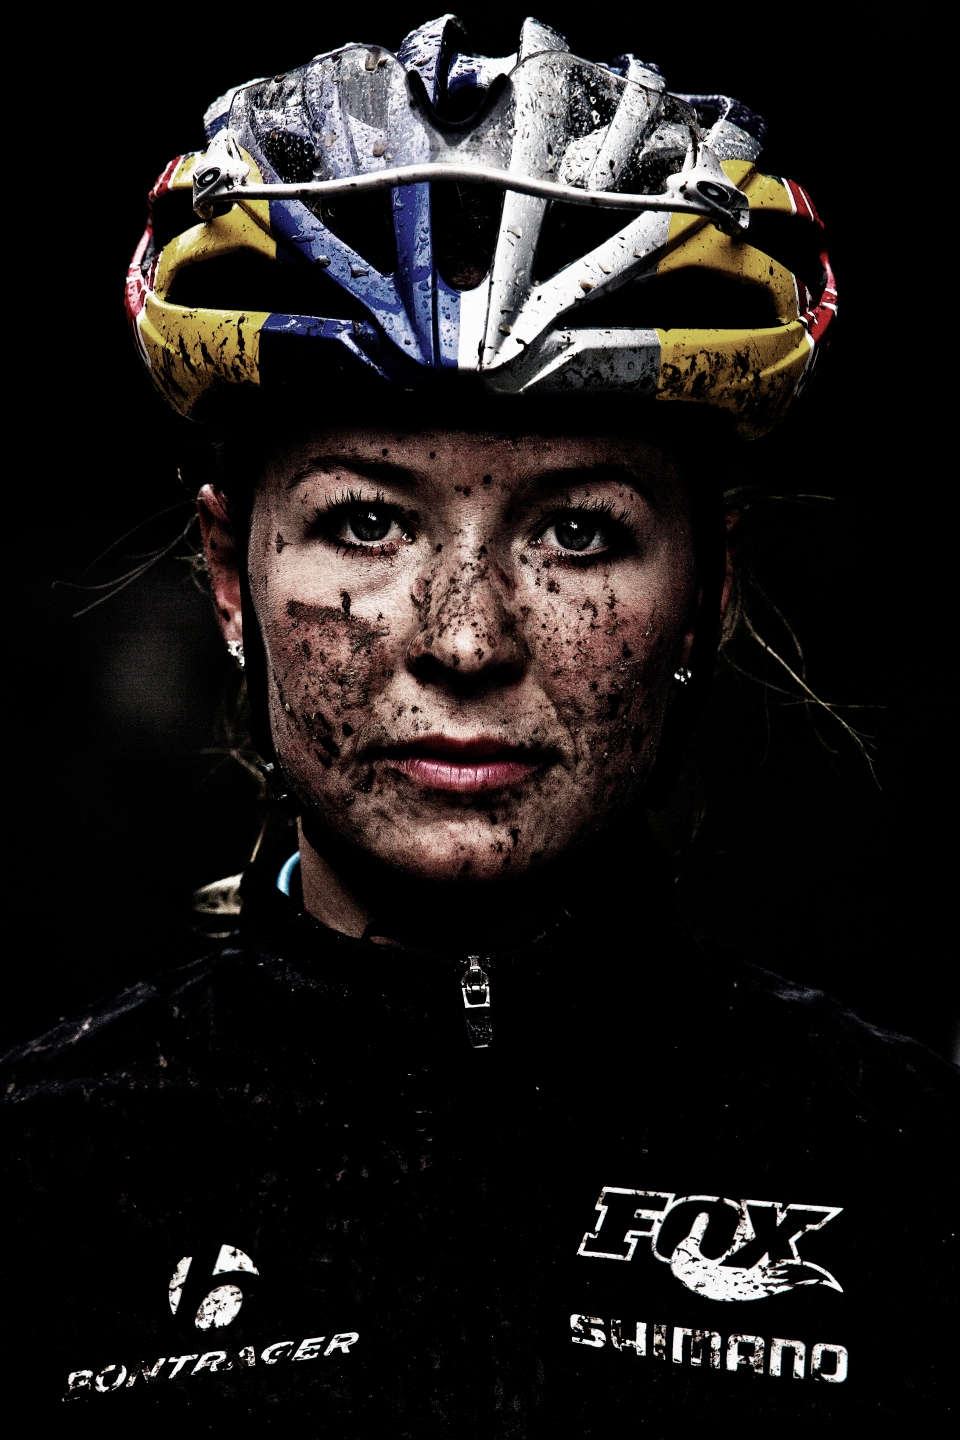 emily-batty-canadian-mountain-bike-team-feb-23-2015-kevinlightphoto-_31q9460b